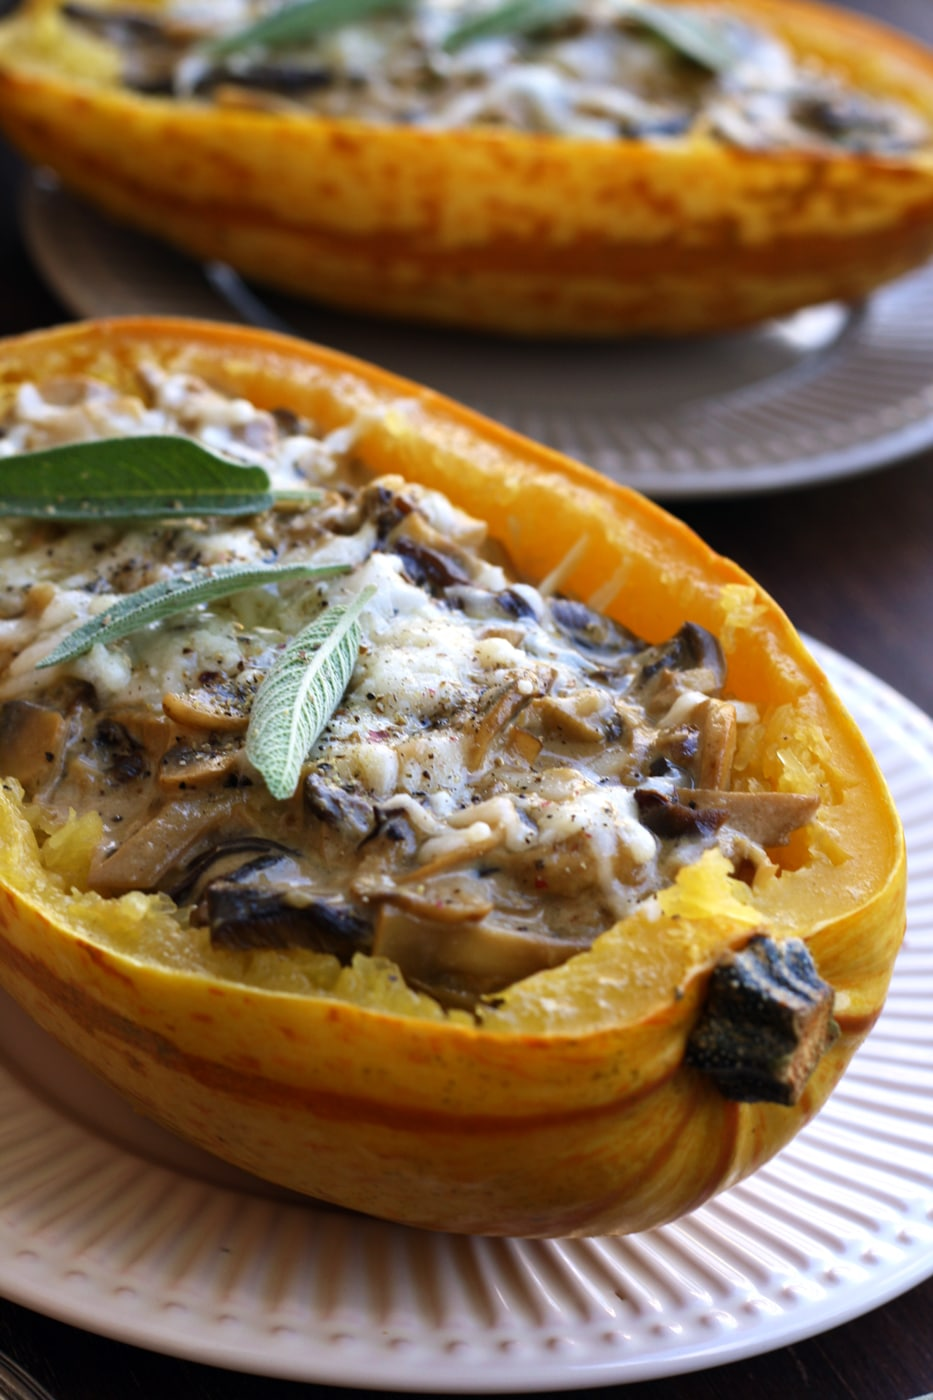 Roasted Spaghetti Squash with Mushrooms Delicious Closeup